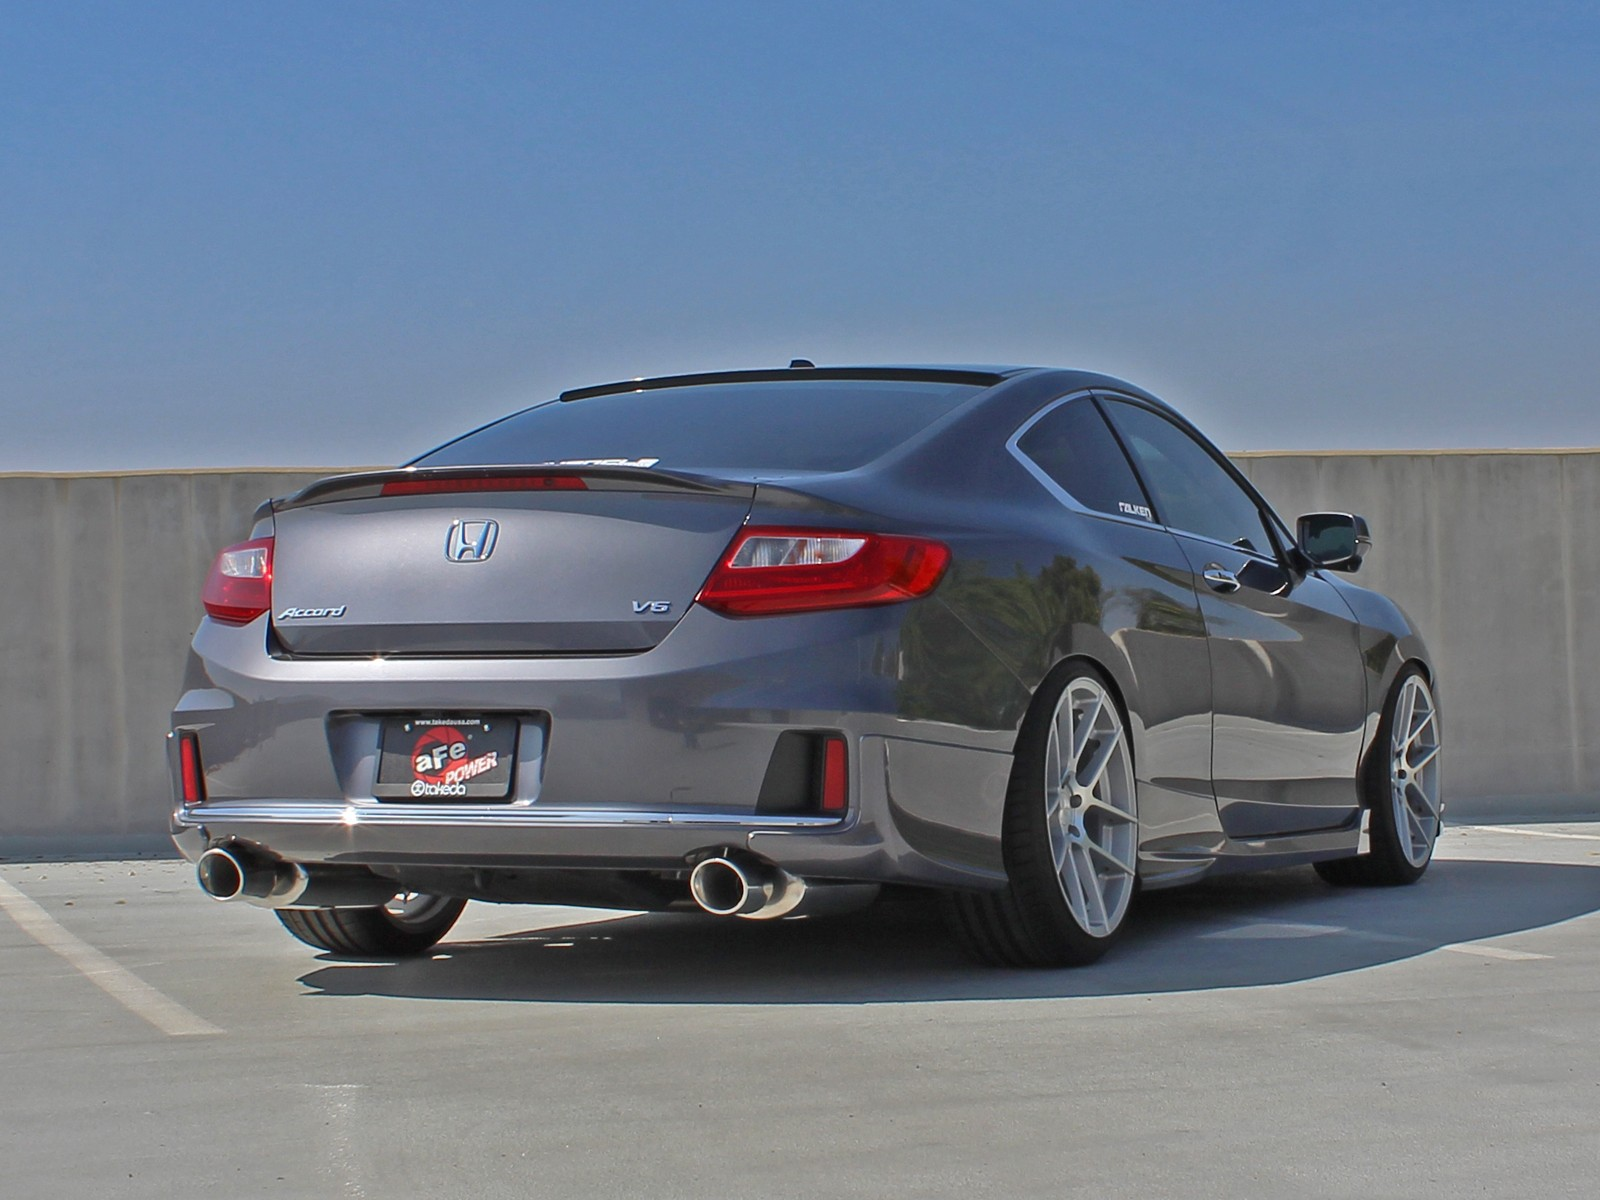 49-36609g1600.1530807284 Interesting Info About 2013 Honda Accord Exl with Terrific Pictures Cars Review